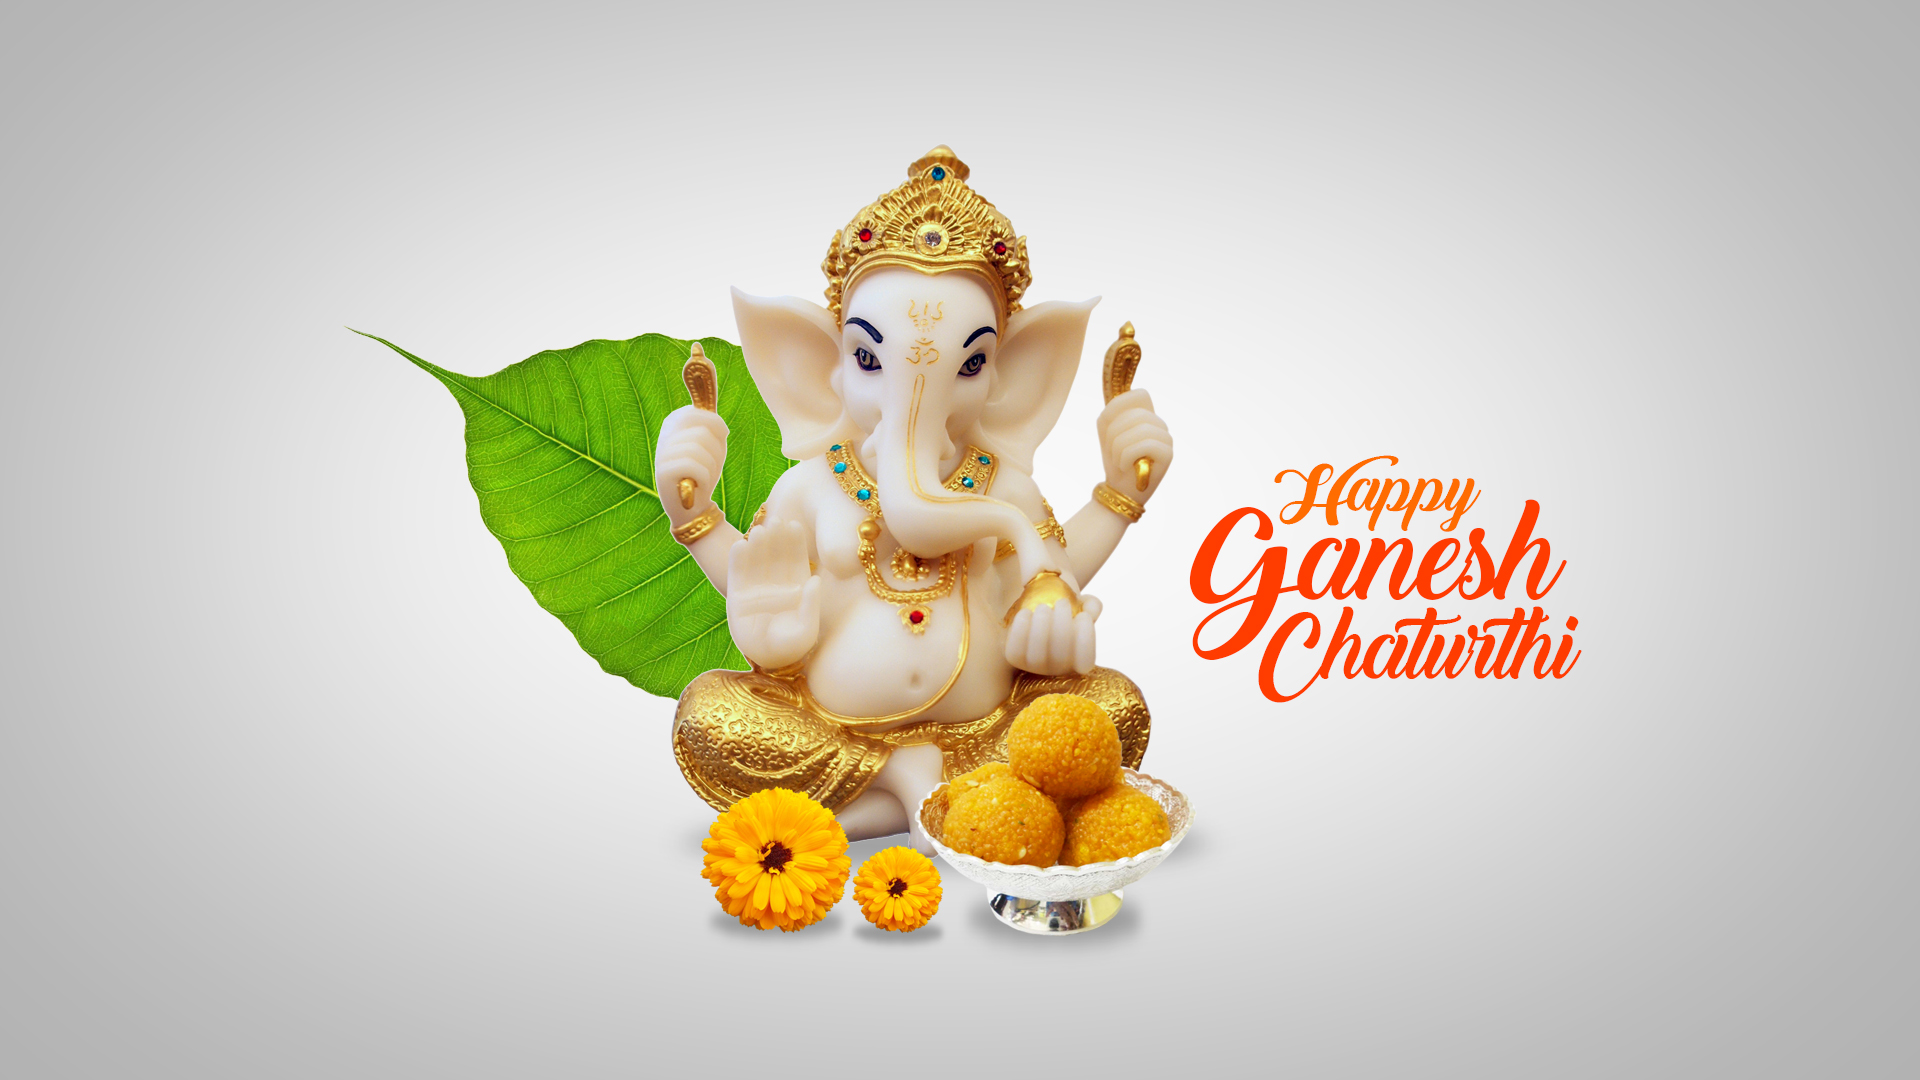 Ganesh-Chaturthi-Greeting-Card-Vinayak-Chaturthi-Greeting-Card-07.jpg